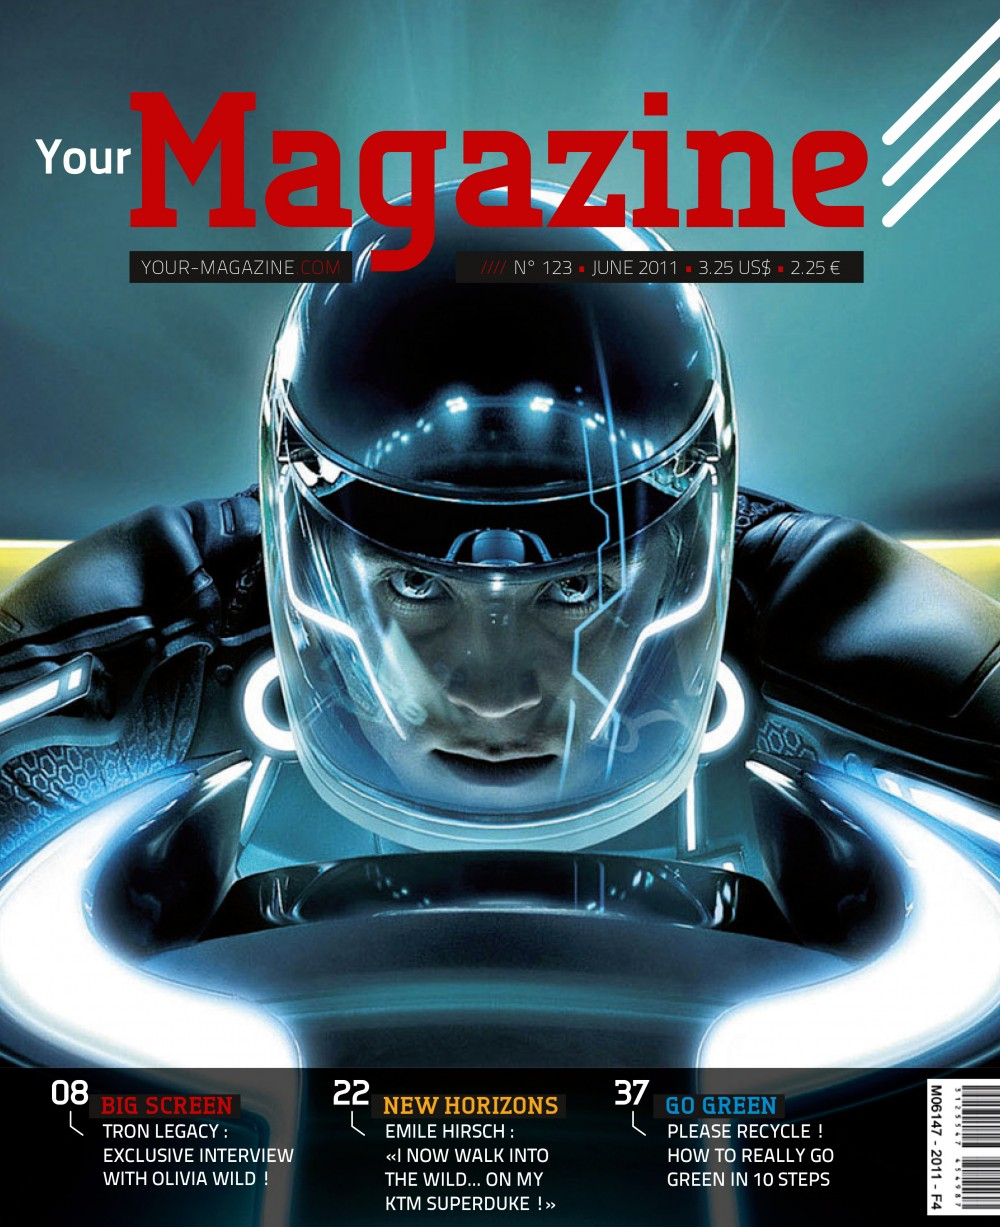 my.magazine.template.indd